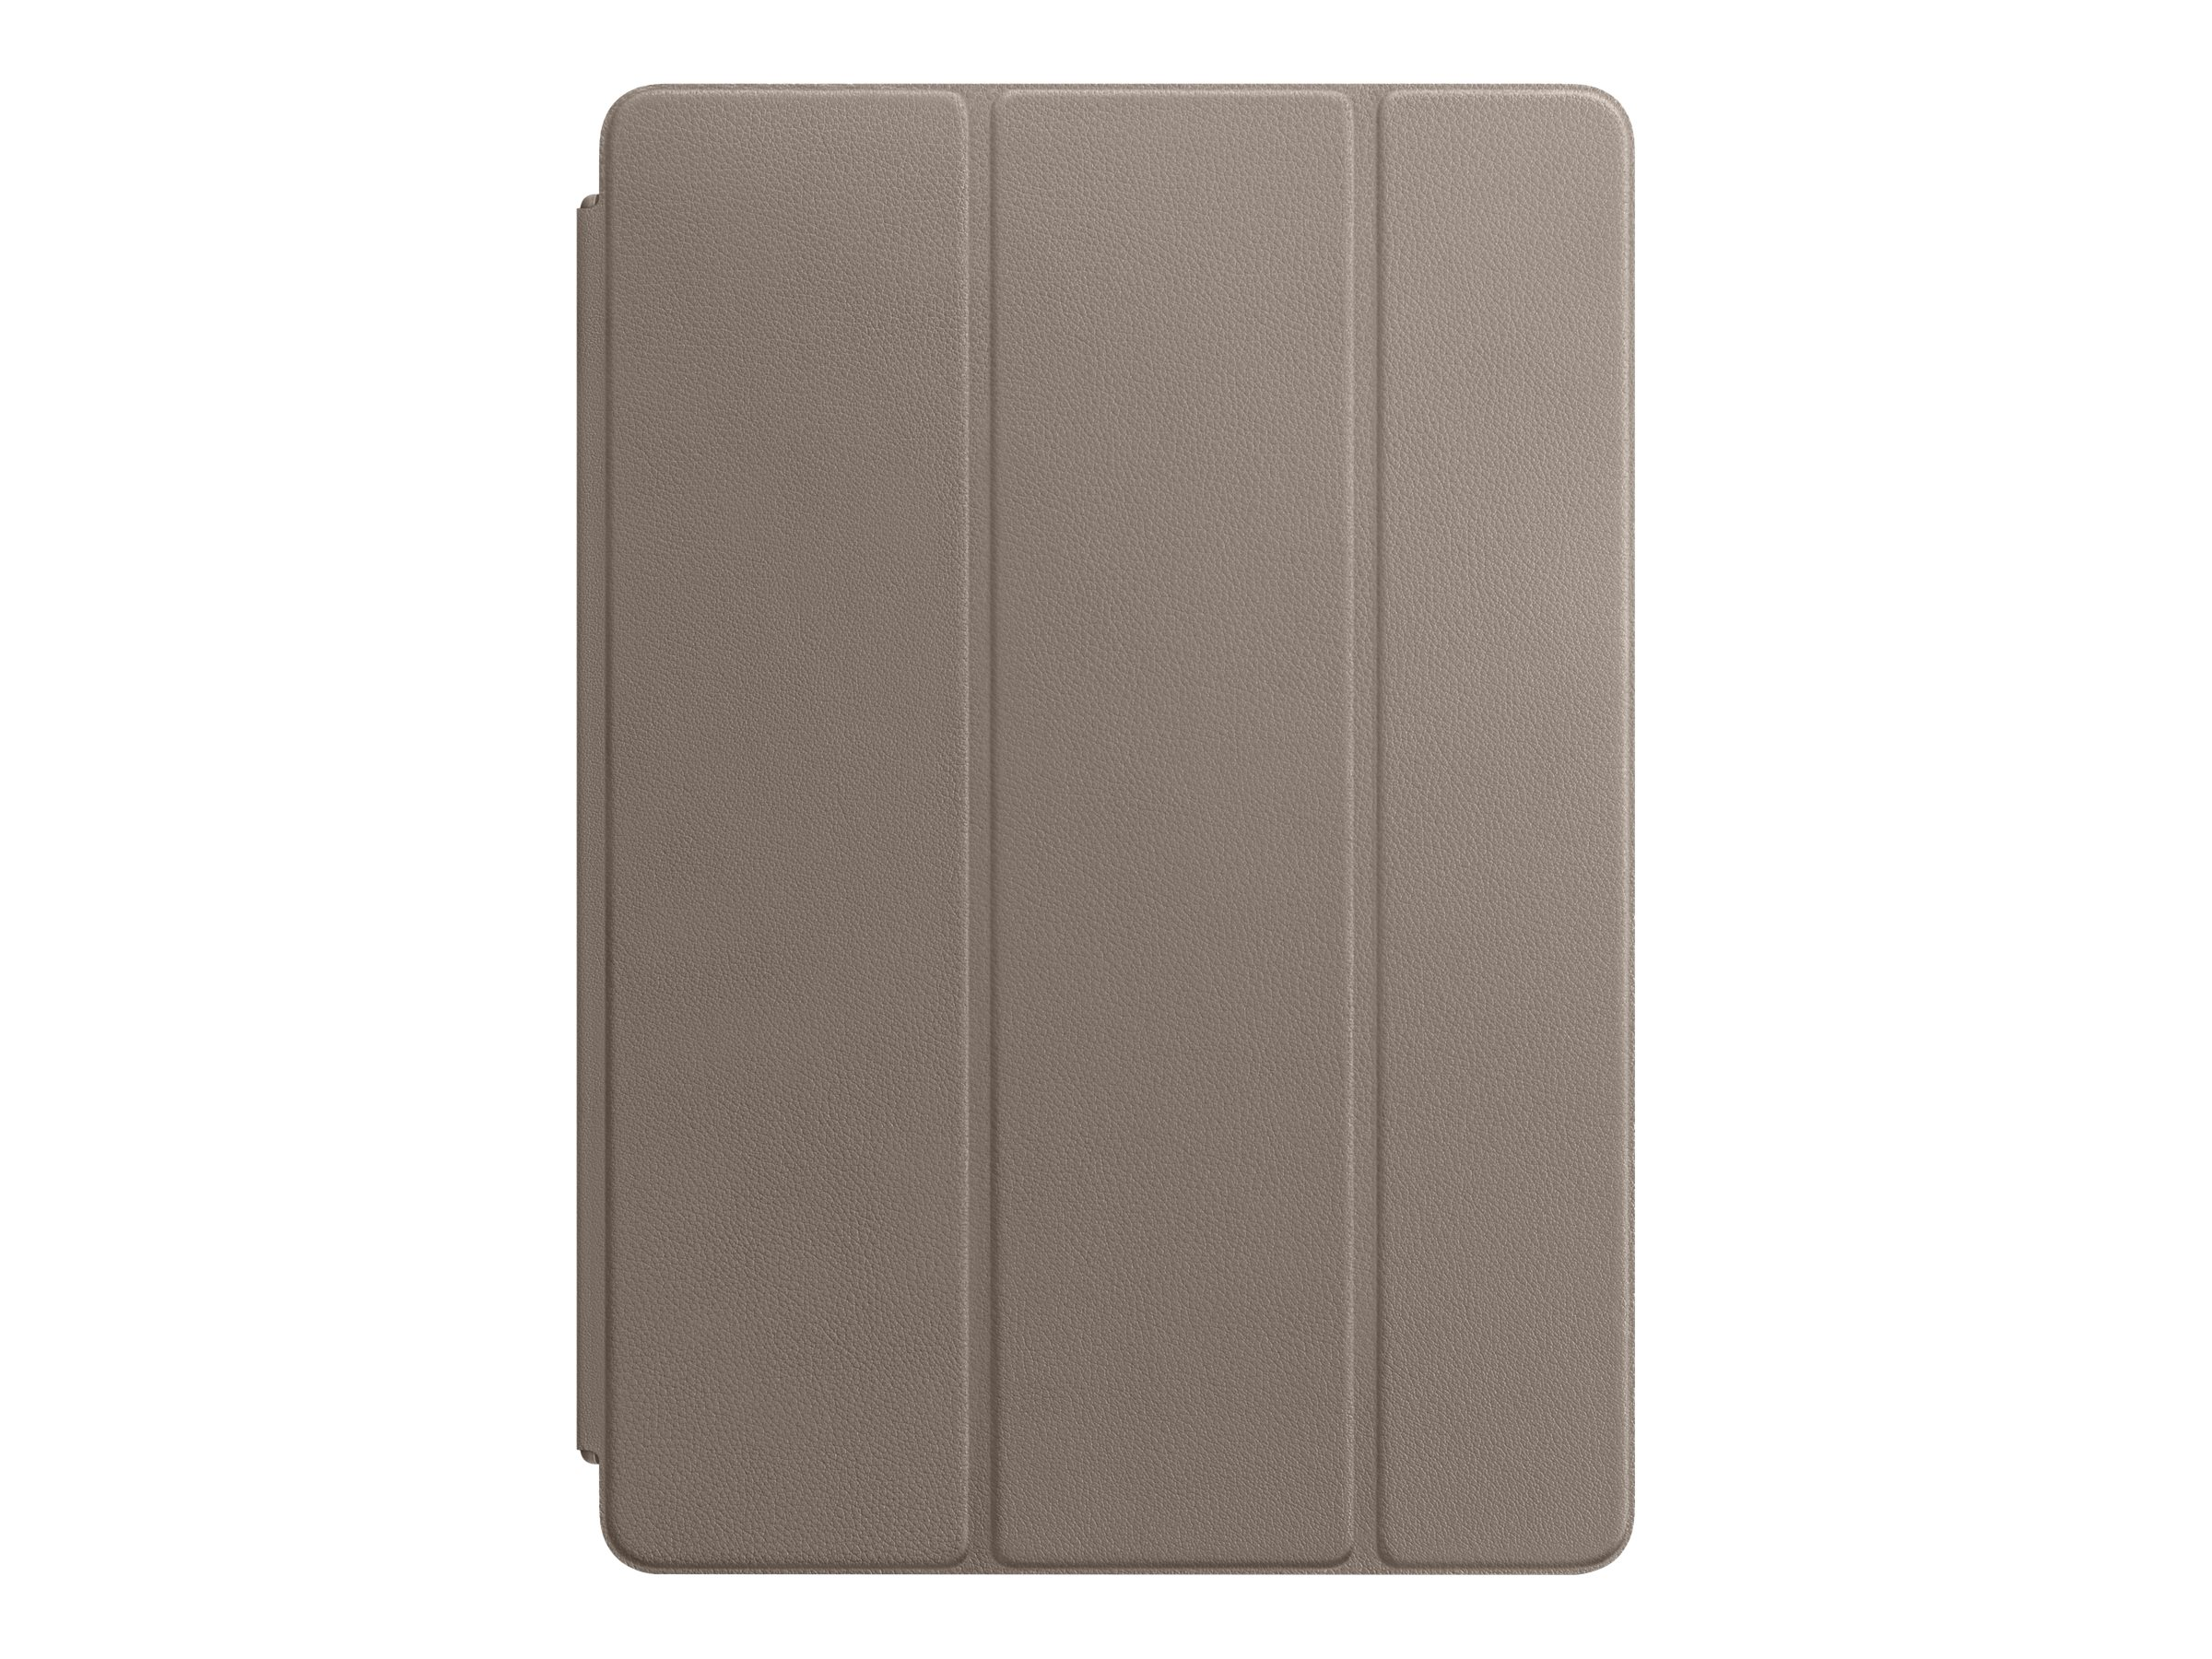 Apple Leather Smart Cover for 10.5 iPad Pro, Taupe